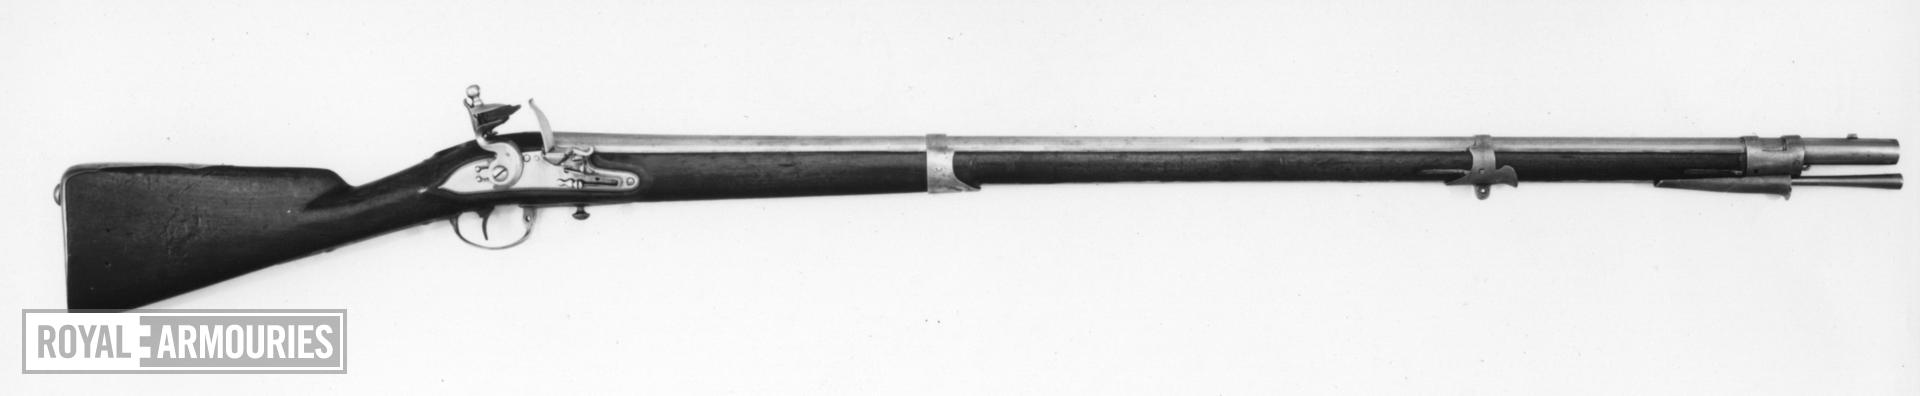 Flintlock muzzle-loading military musket - Model 1774